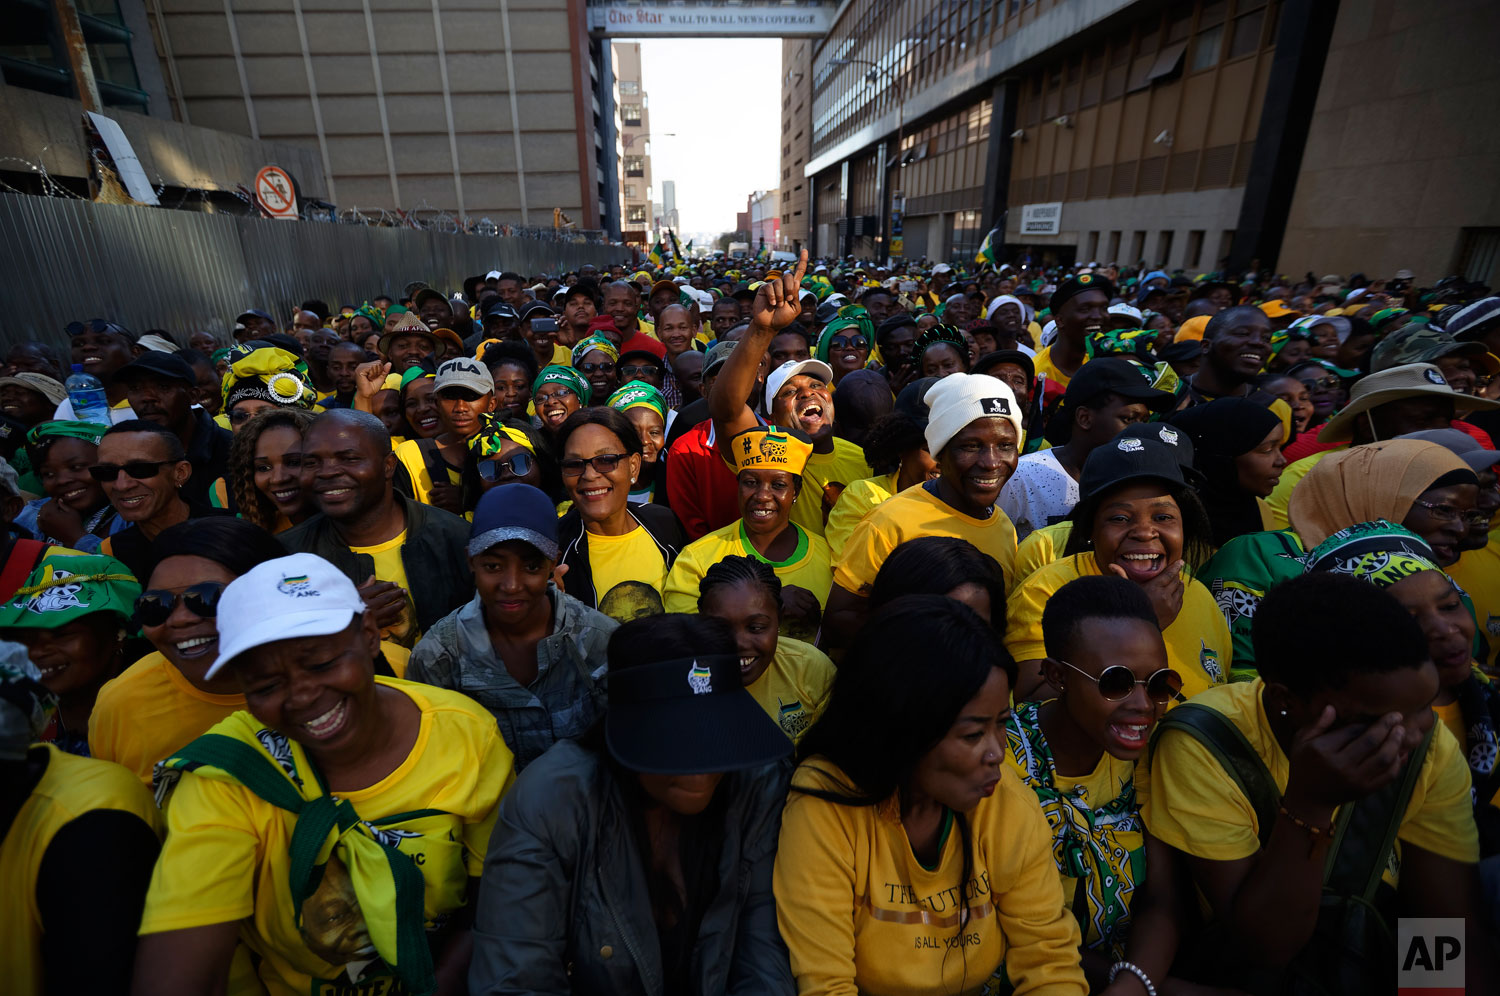 Supporters of the African National Congress (ANC) party cheer during a victory rally in downtown Johannesburg, South Africa Sunday, May 12, 2019.  (AP Photo/Ben Curtis)